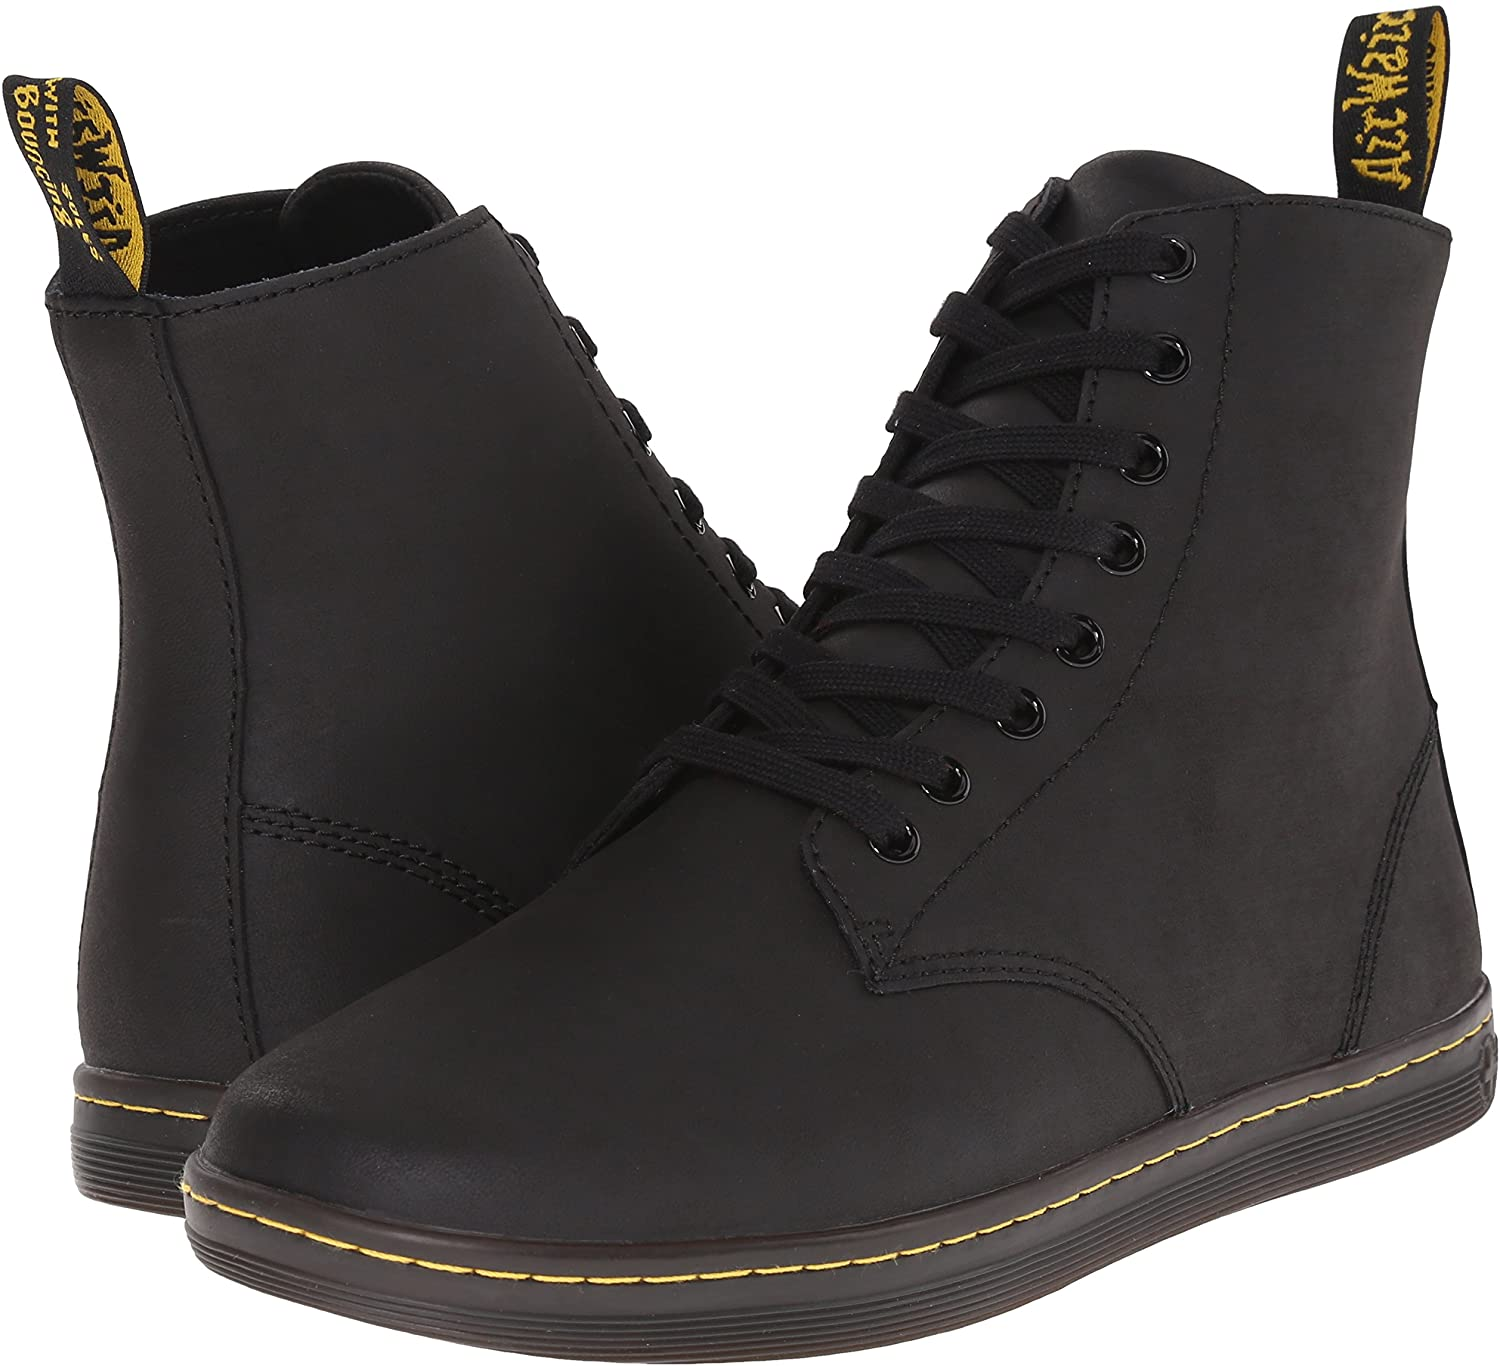 Dr. Martens Men's Tobias Minimalist Boots with flat sole.